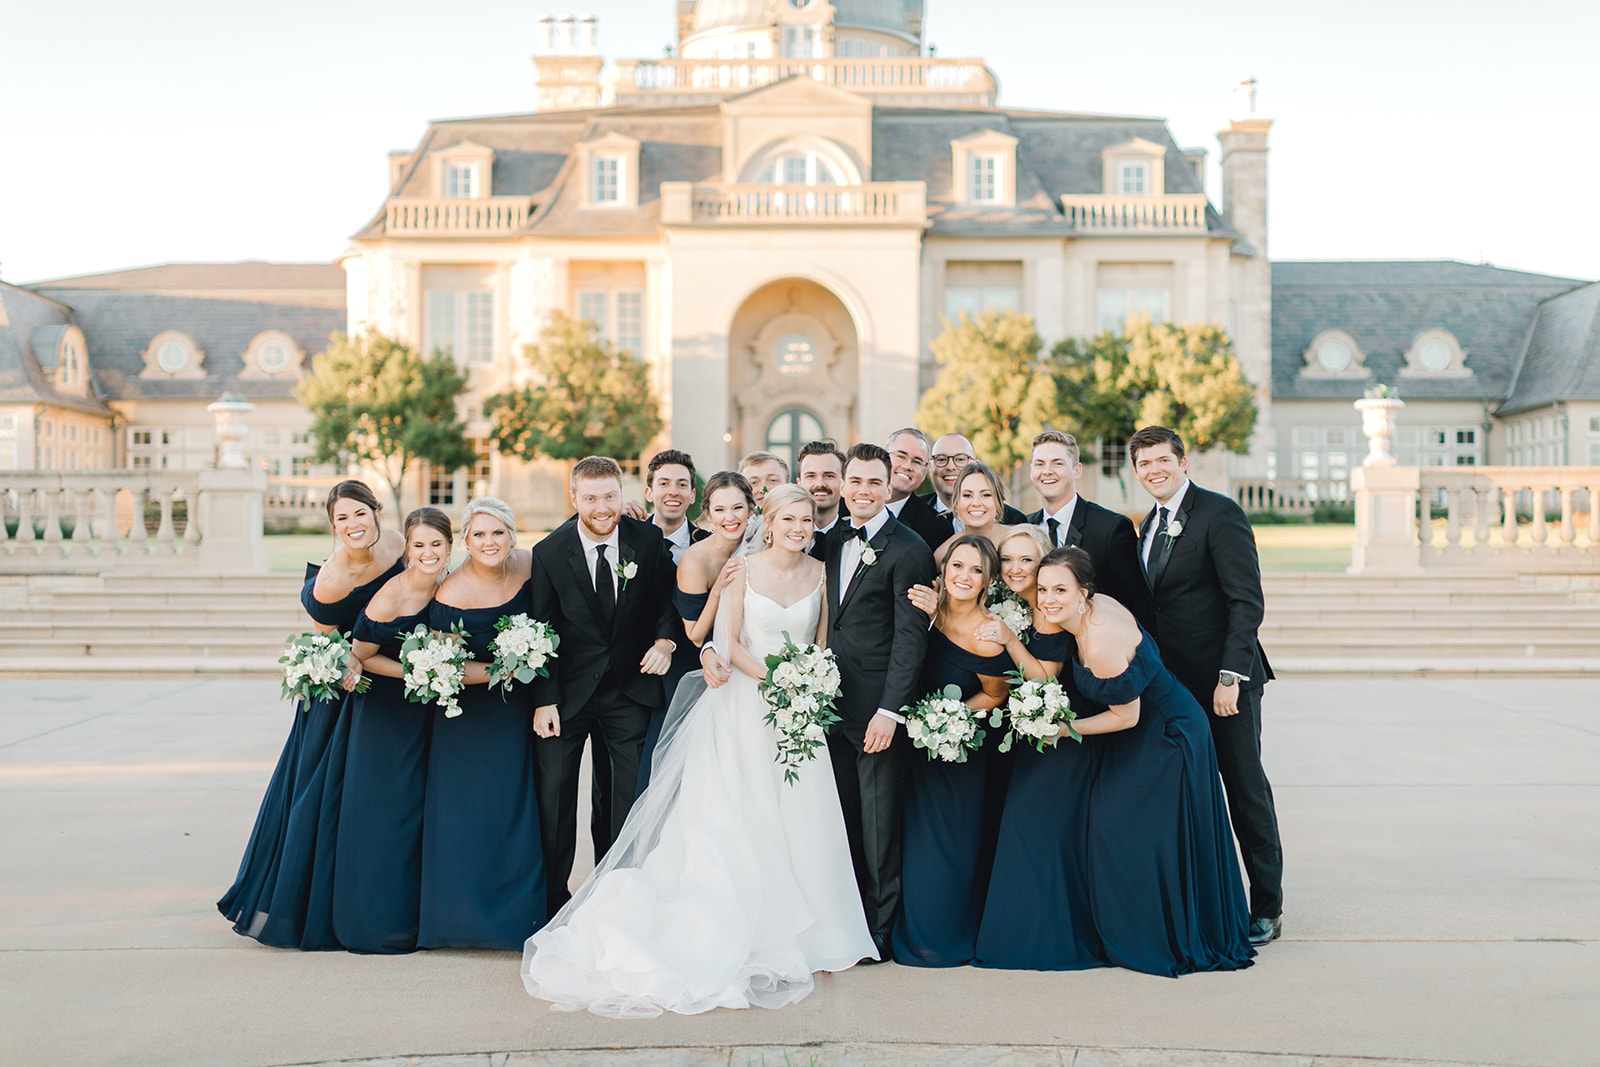 Wedding party photo ideas: Timeless Wedding at The Olana featured on Alexa Kay Events!